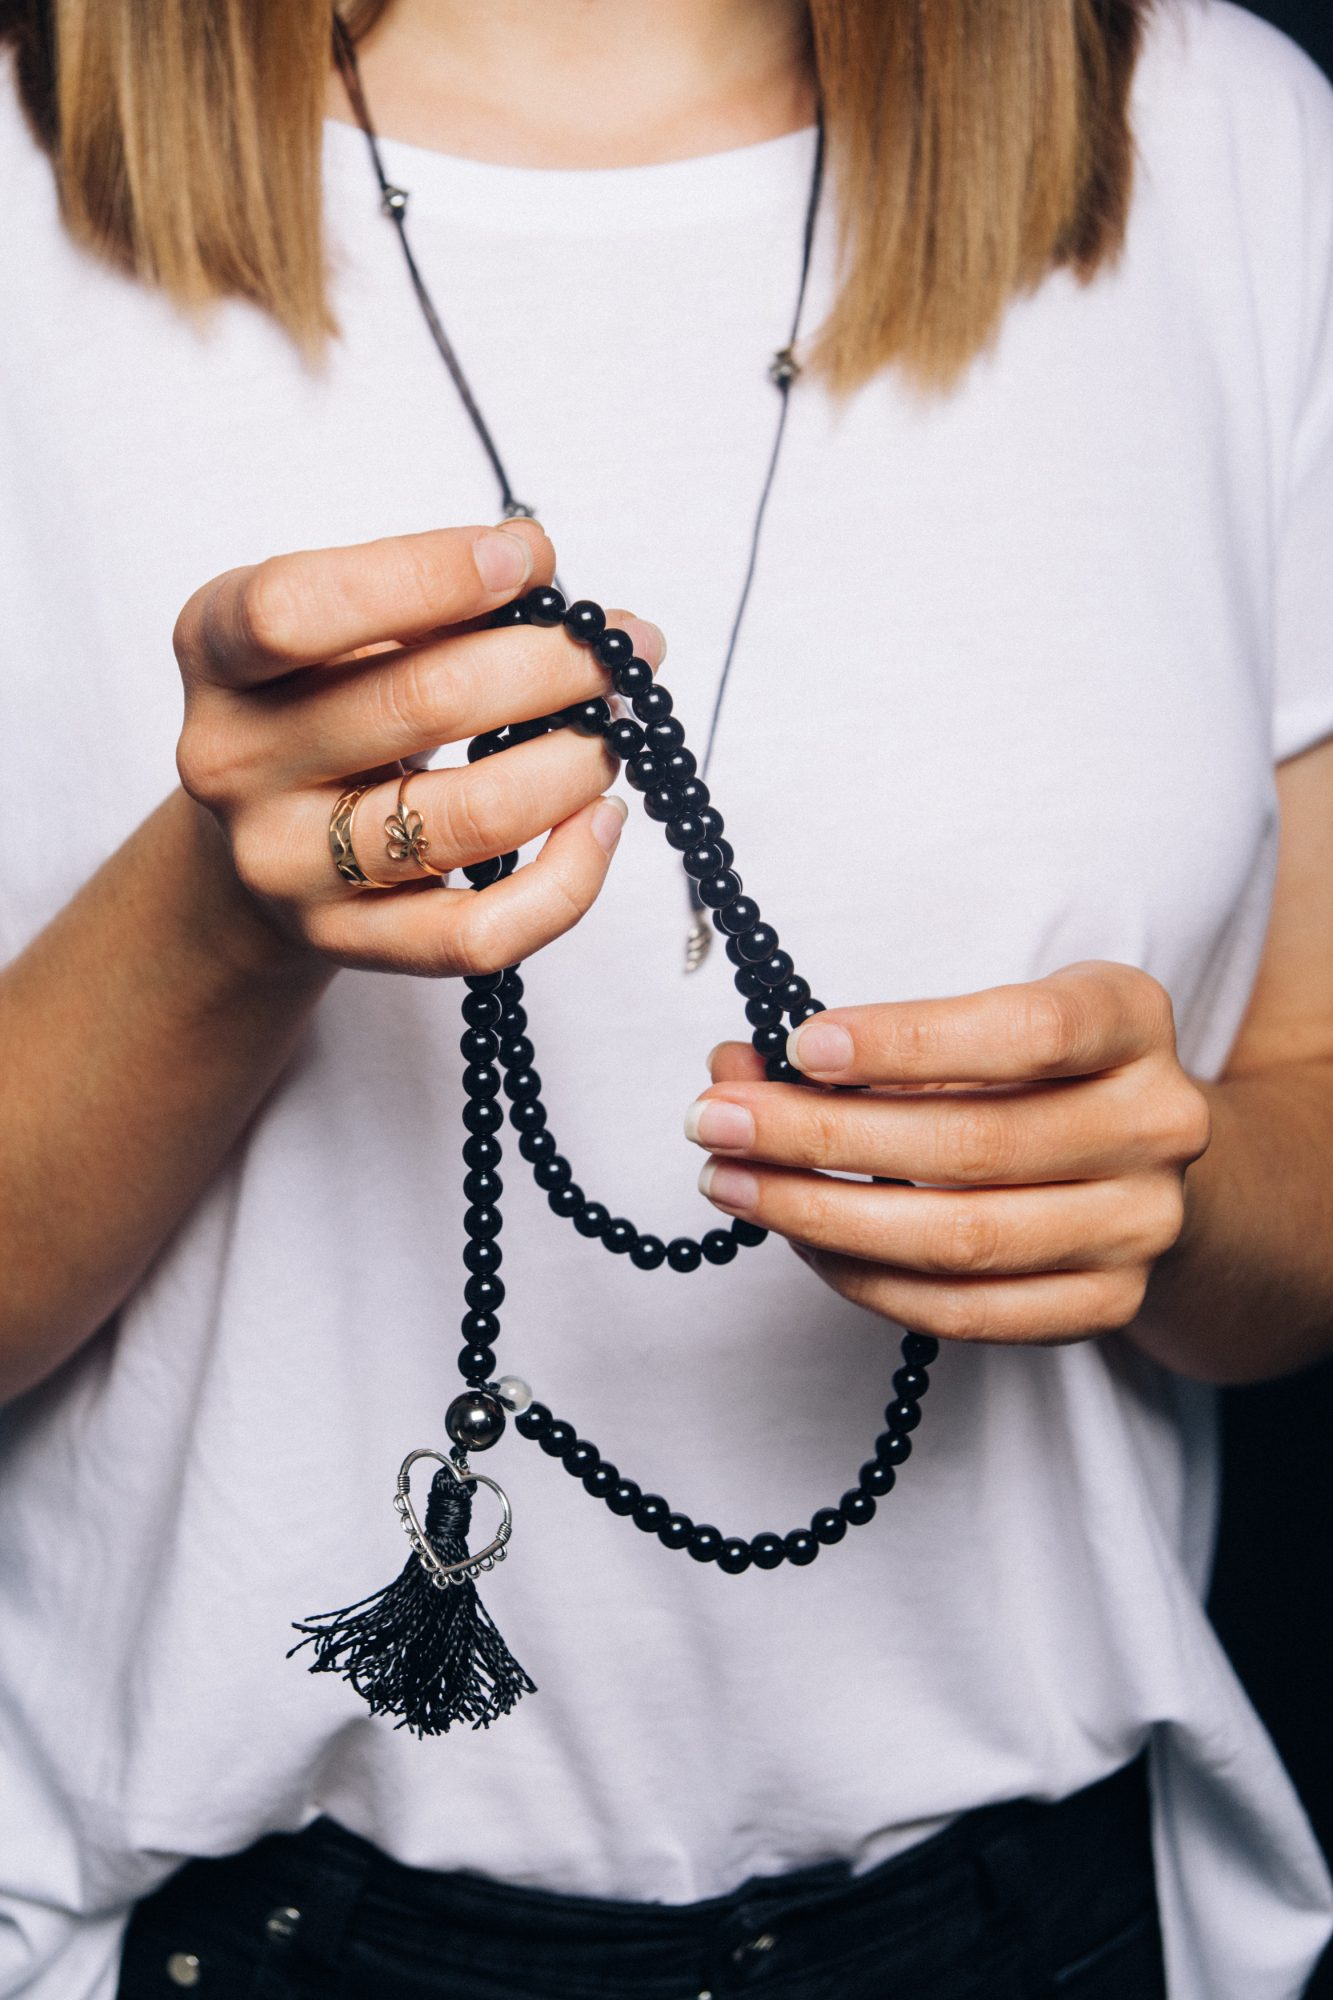 Black beads bracelet in girl hand. Can be used as fashion accessories, also as praying beads, for counting prayers or practicing mindfulness meditation. Some believe black stone has protection power